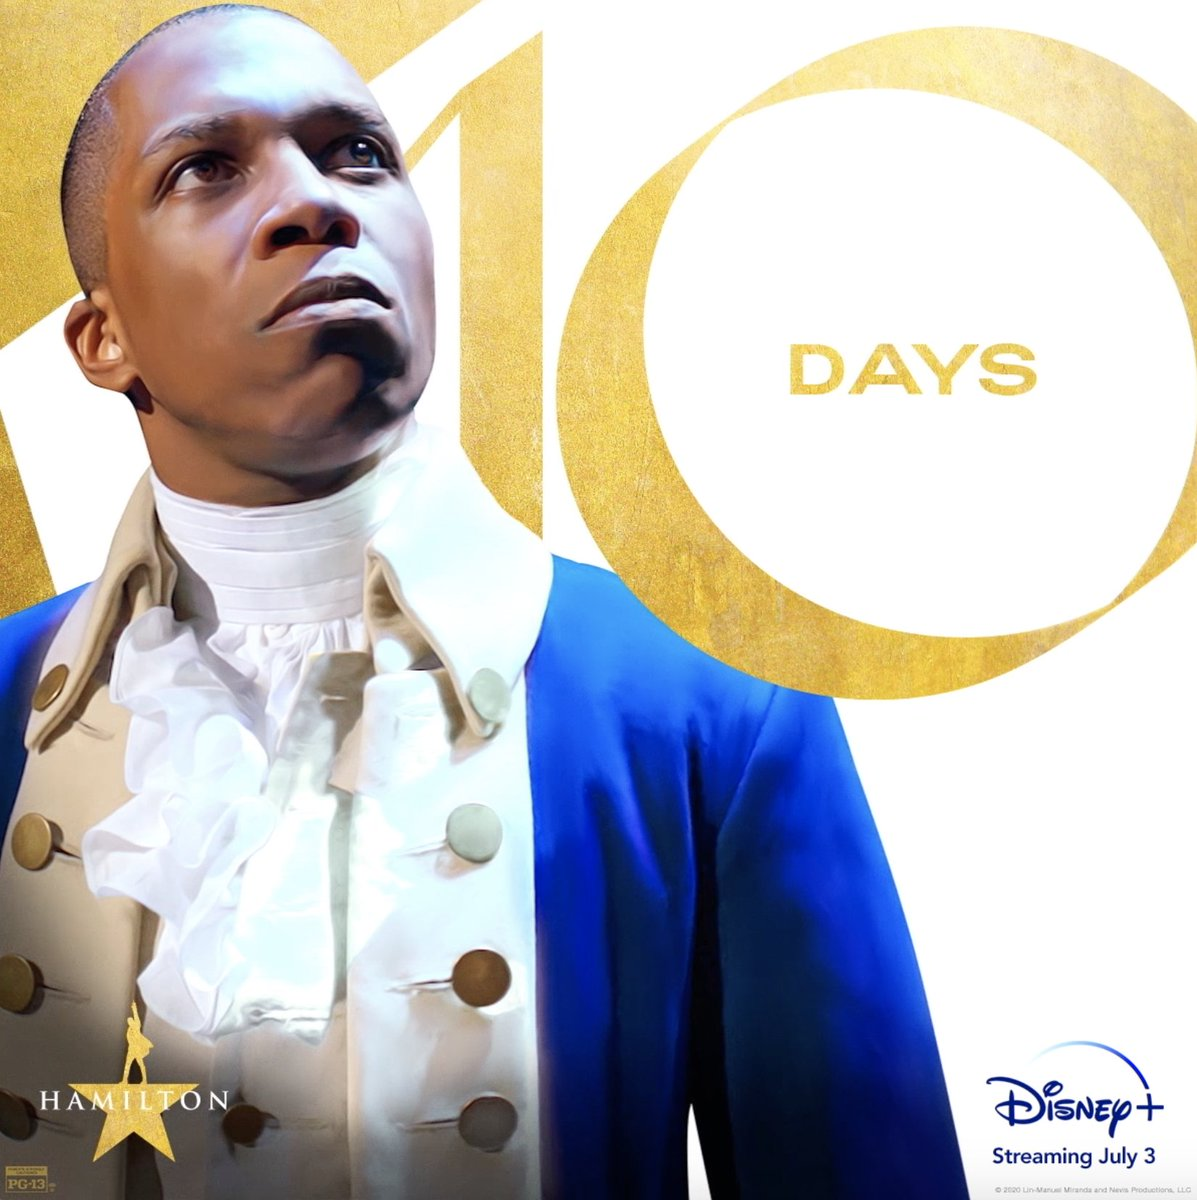 Wait for it: Only 10 days until Hamilton is streaming exclusively on #DisneyPlus. #Hamilfilm